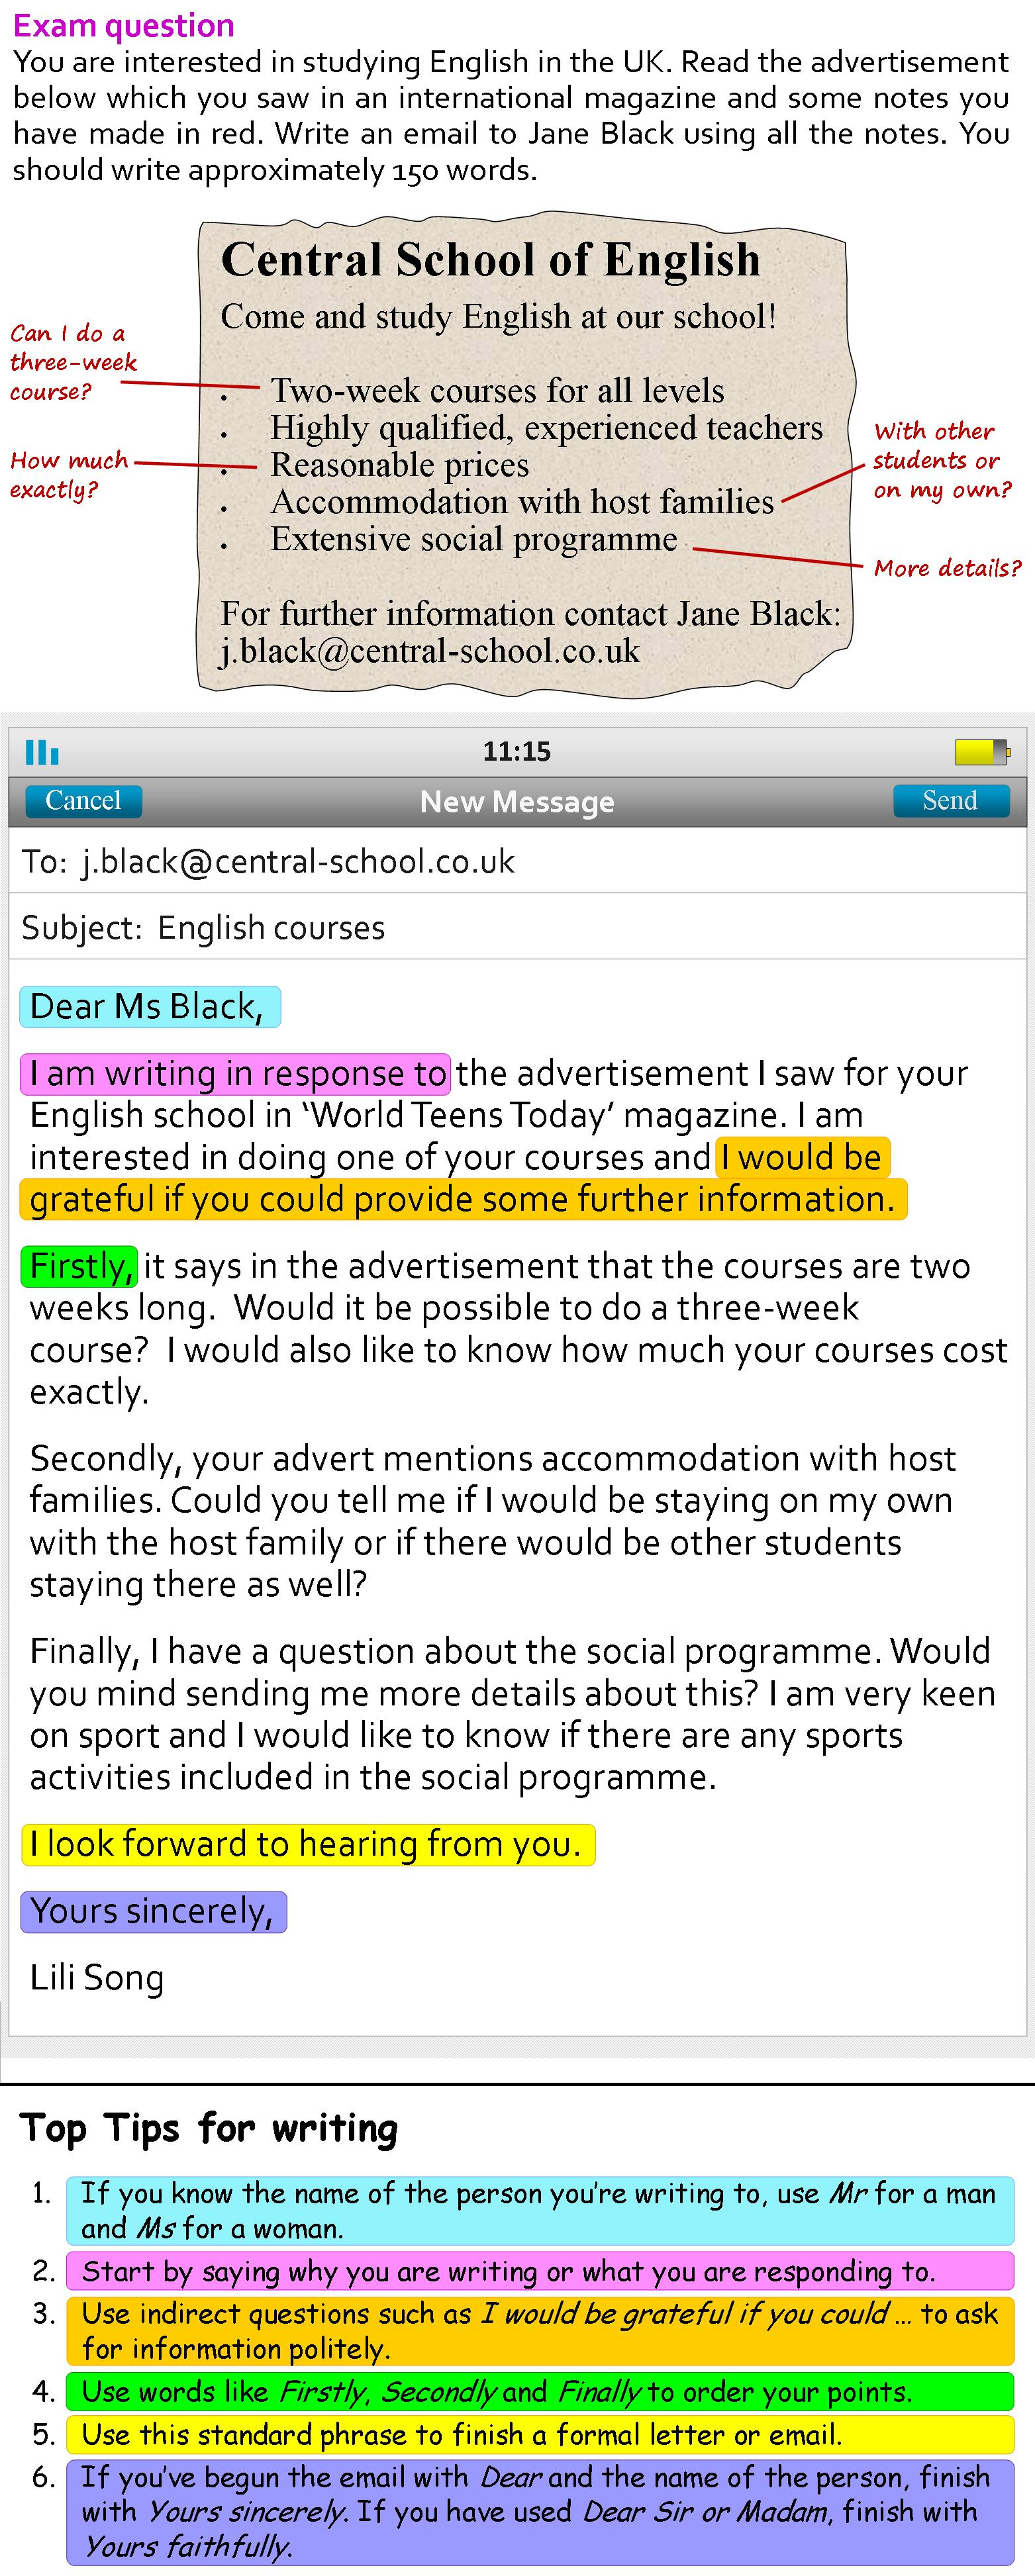 A More Formal Email Learnenglish Teens